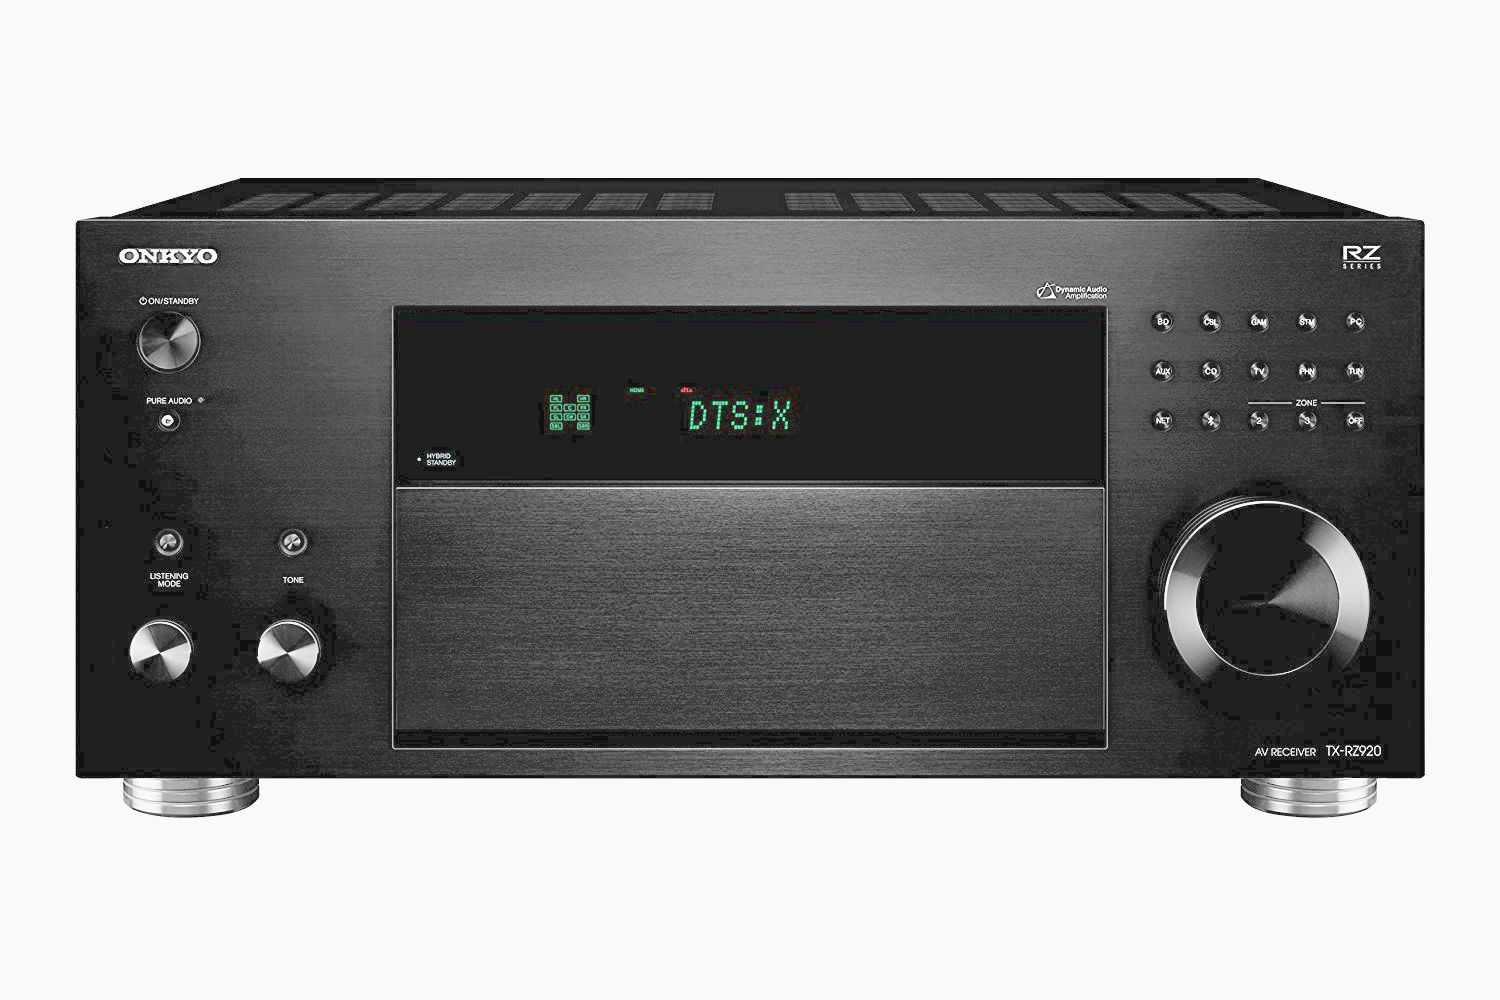 10 best high-end home theater receivers to buy in 2019